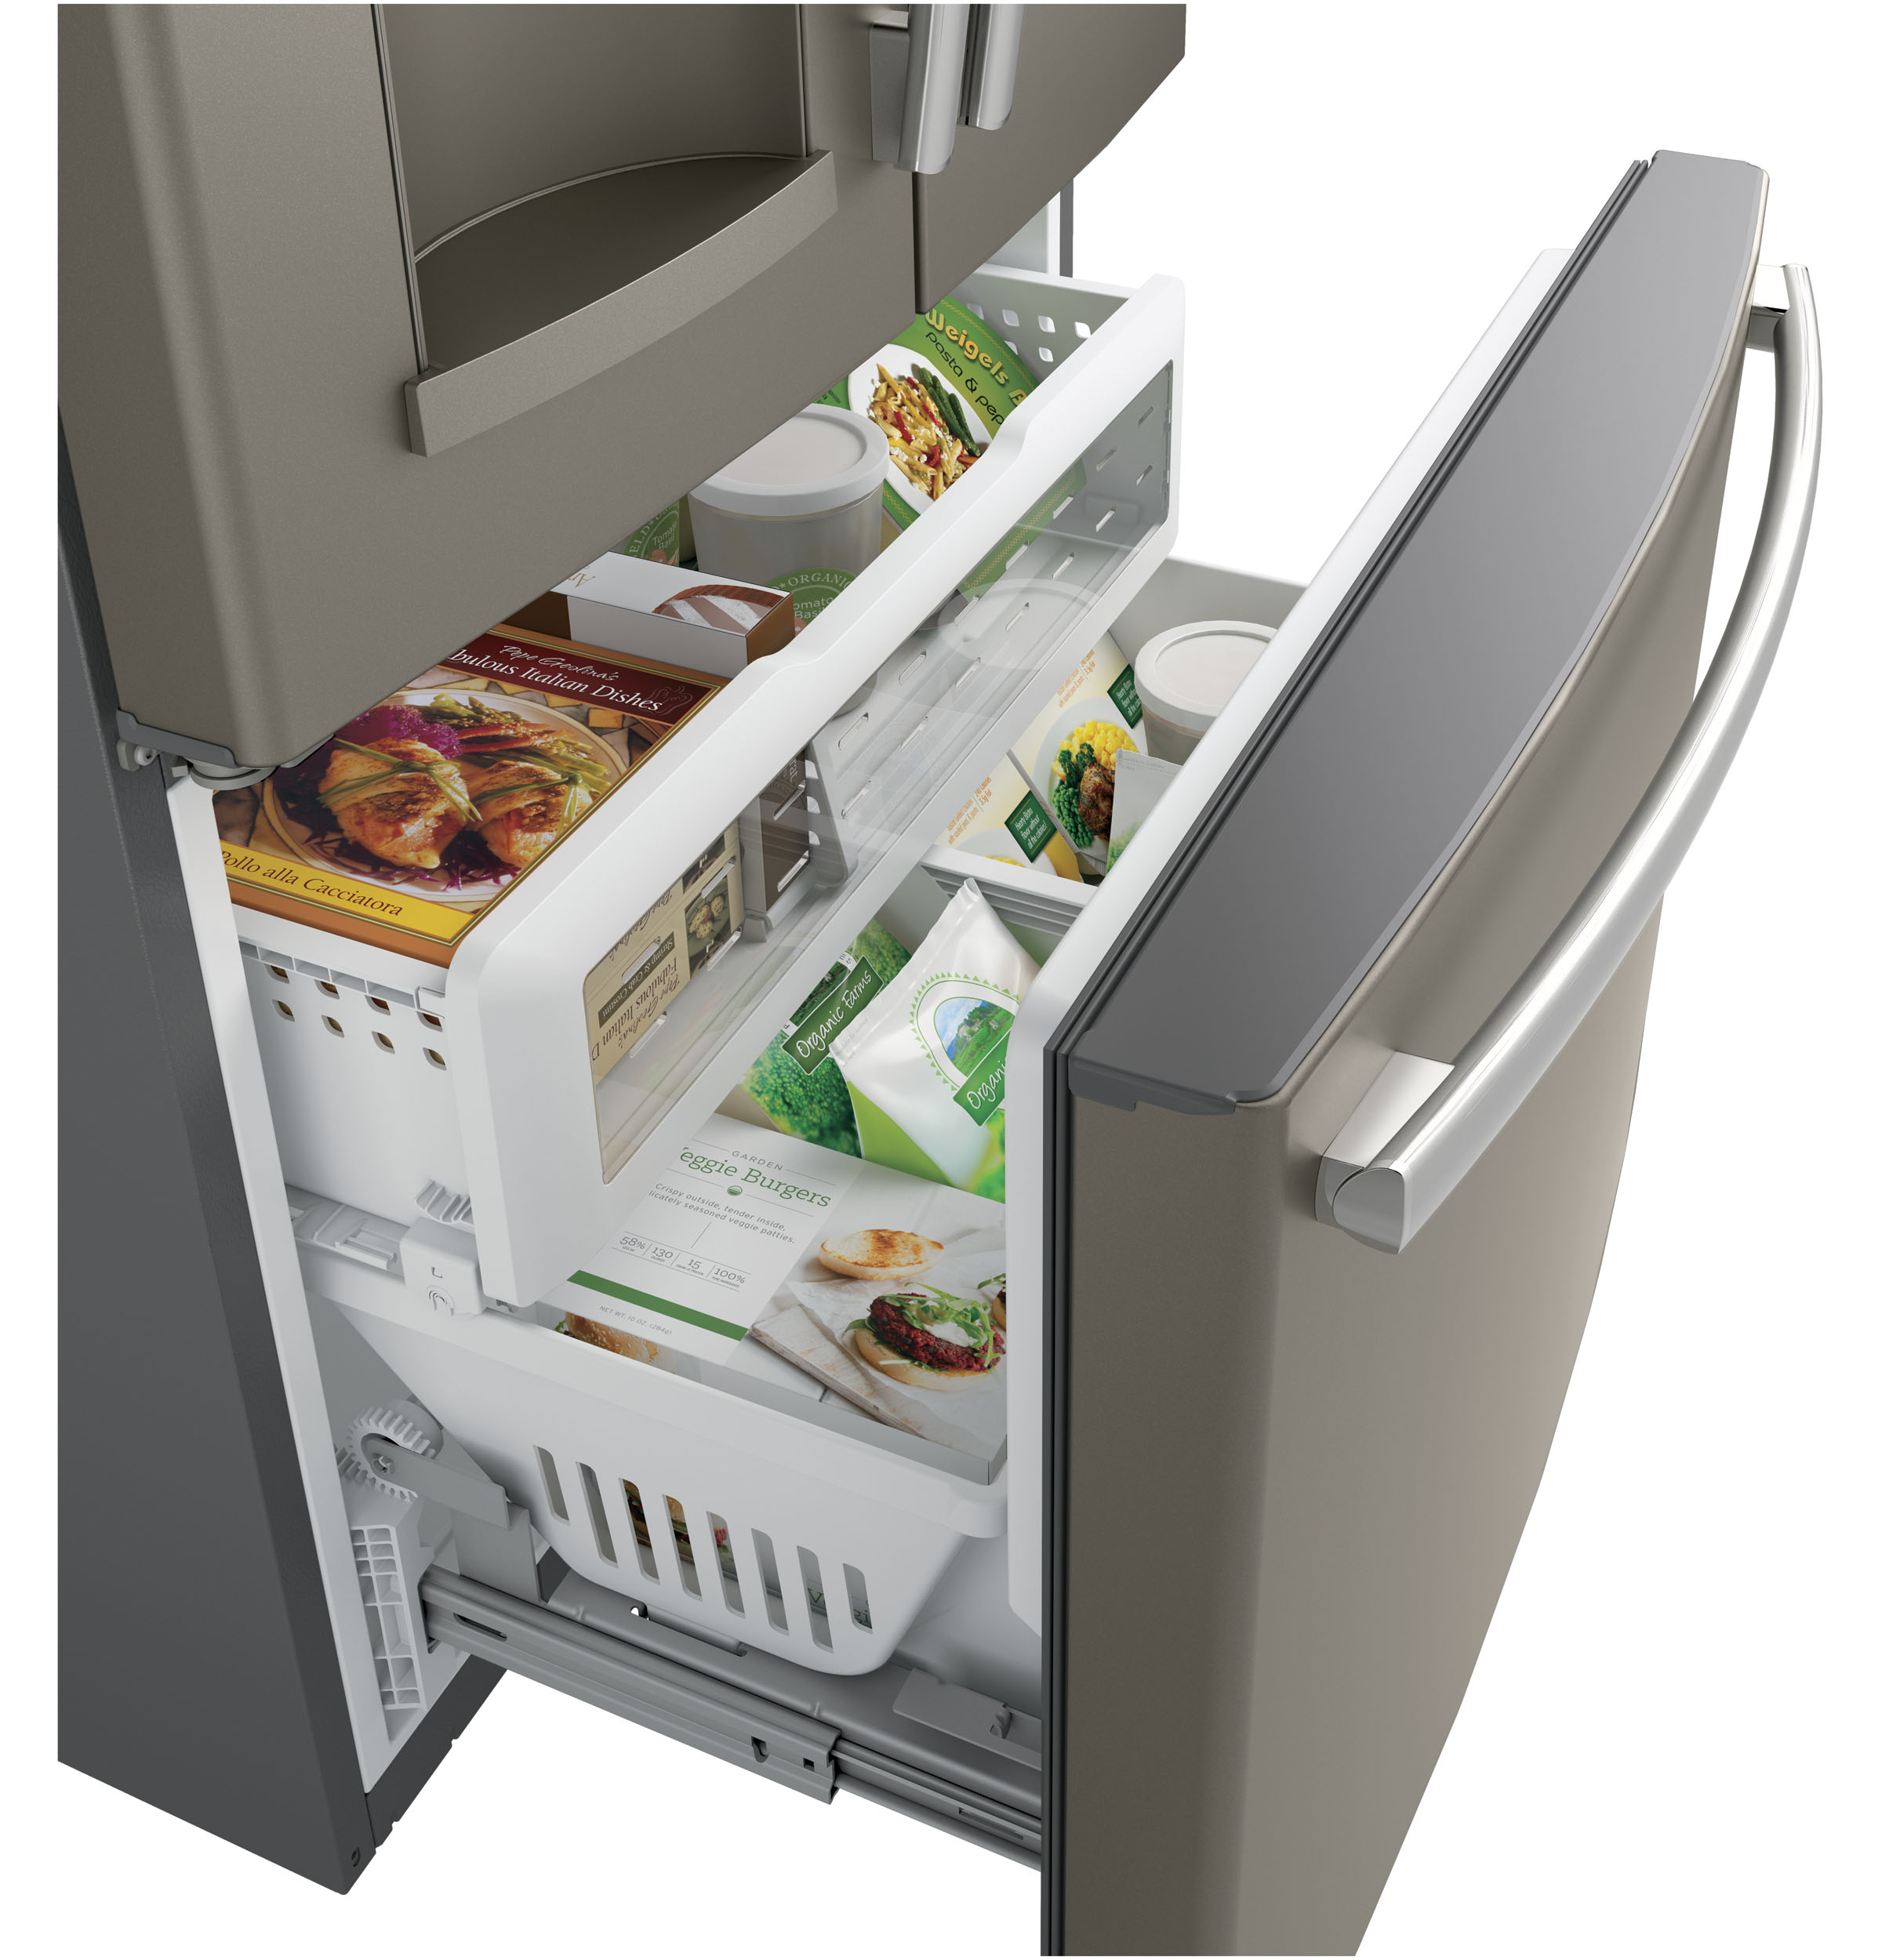 Model: GFE28HMKES | GE GE® ENERGY STAR® 27.8 Cu. Ft. French-Door Refrigerator